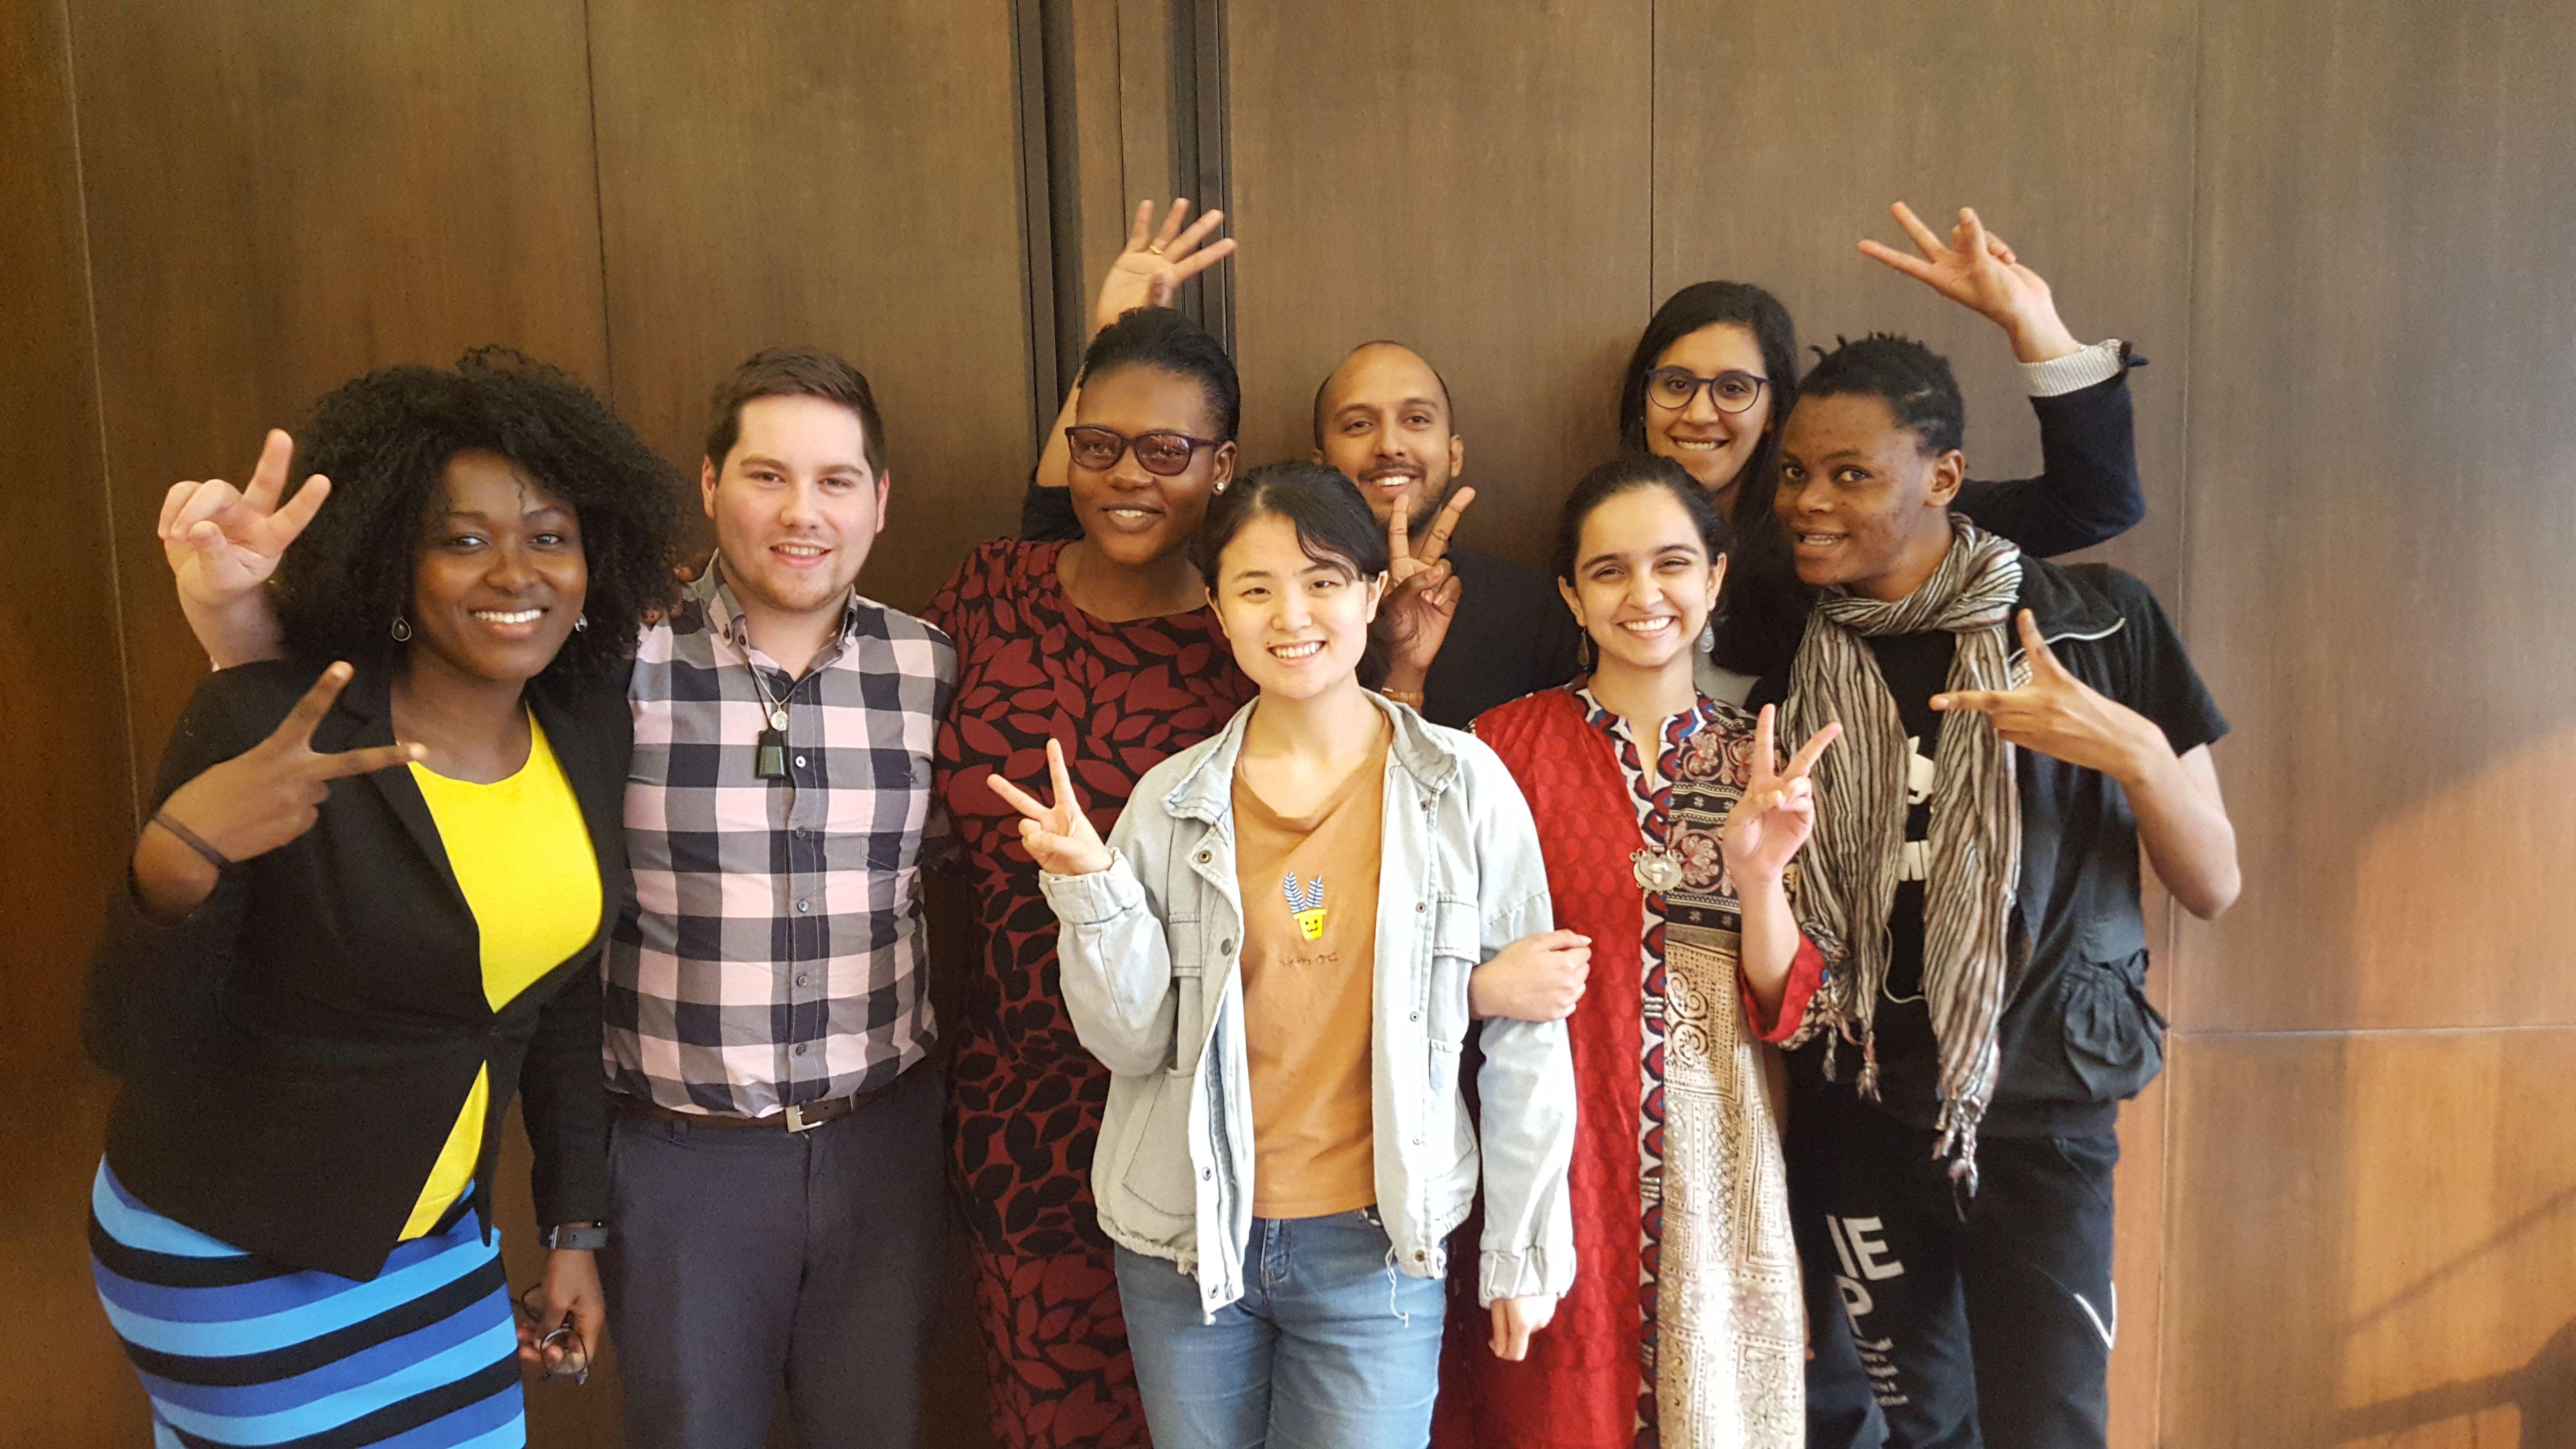 Lancet Youth Commissioners from Nigeria, New Zealand, Zambia, Sri Lanka, China, India and Uganda; U of T medical student Mariam Naguib is pictured in the top row, far right.